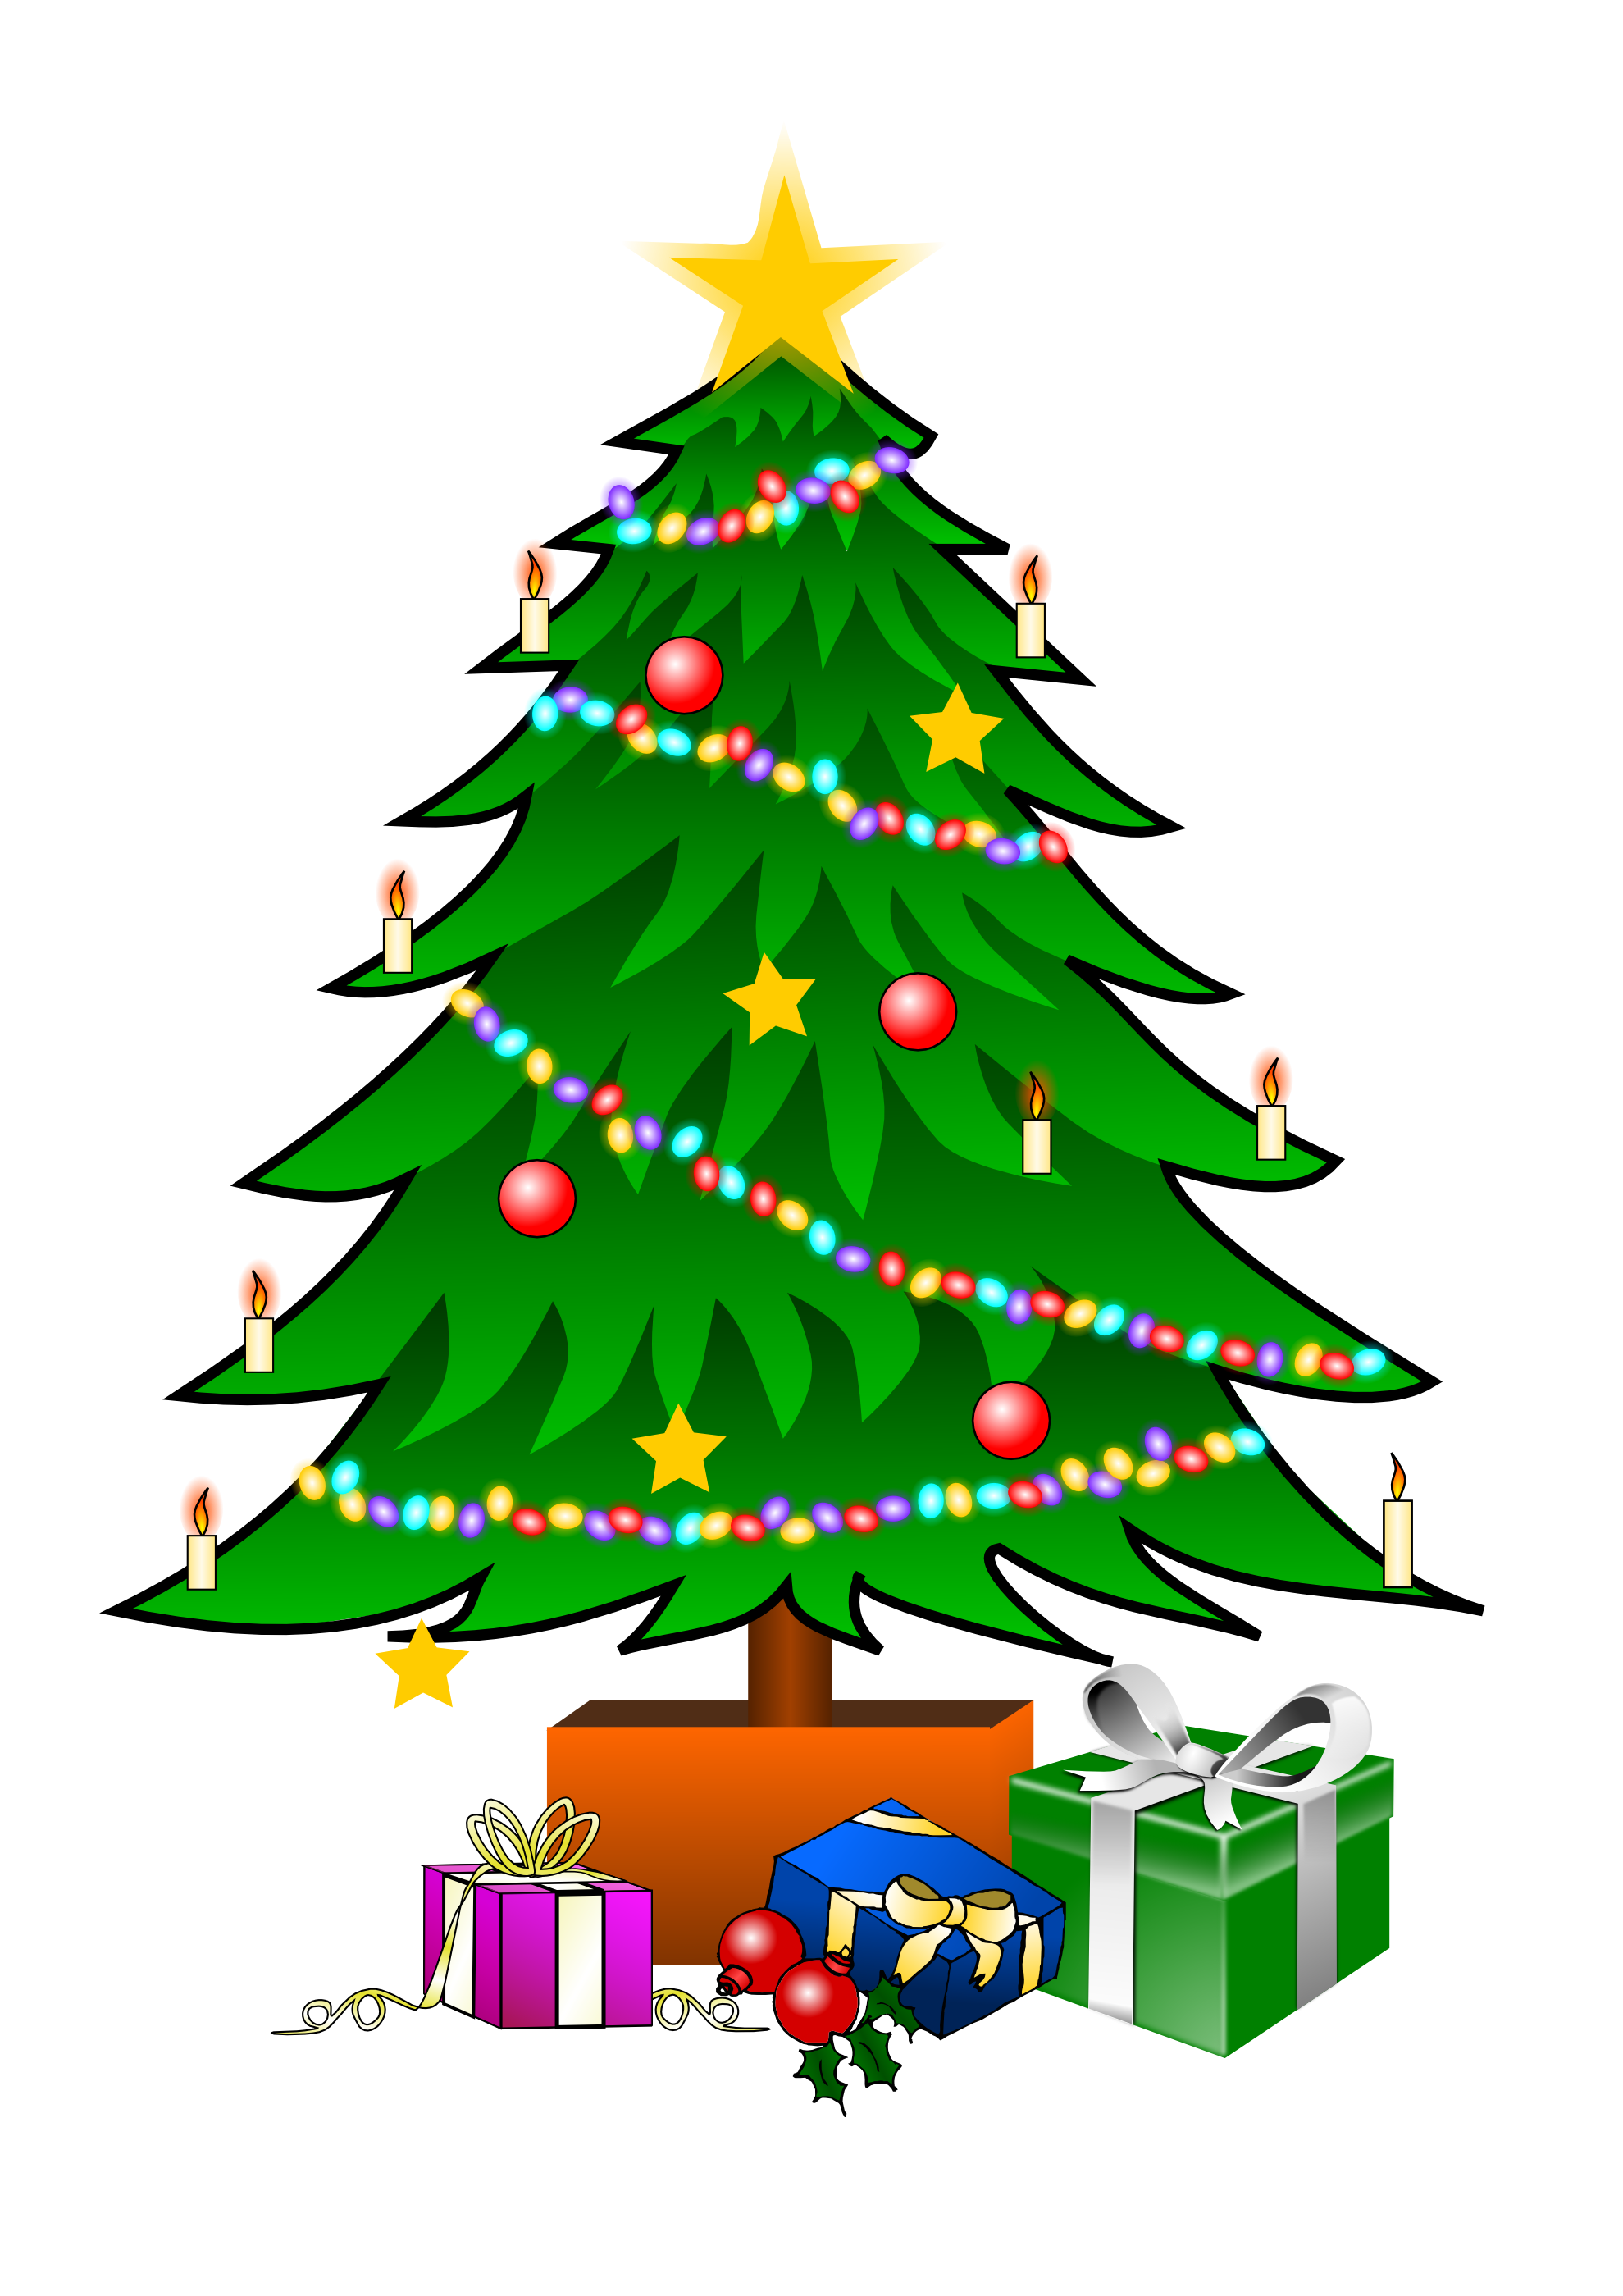 christmas tree free download transparent - Christmas Tree Images Free